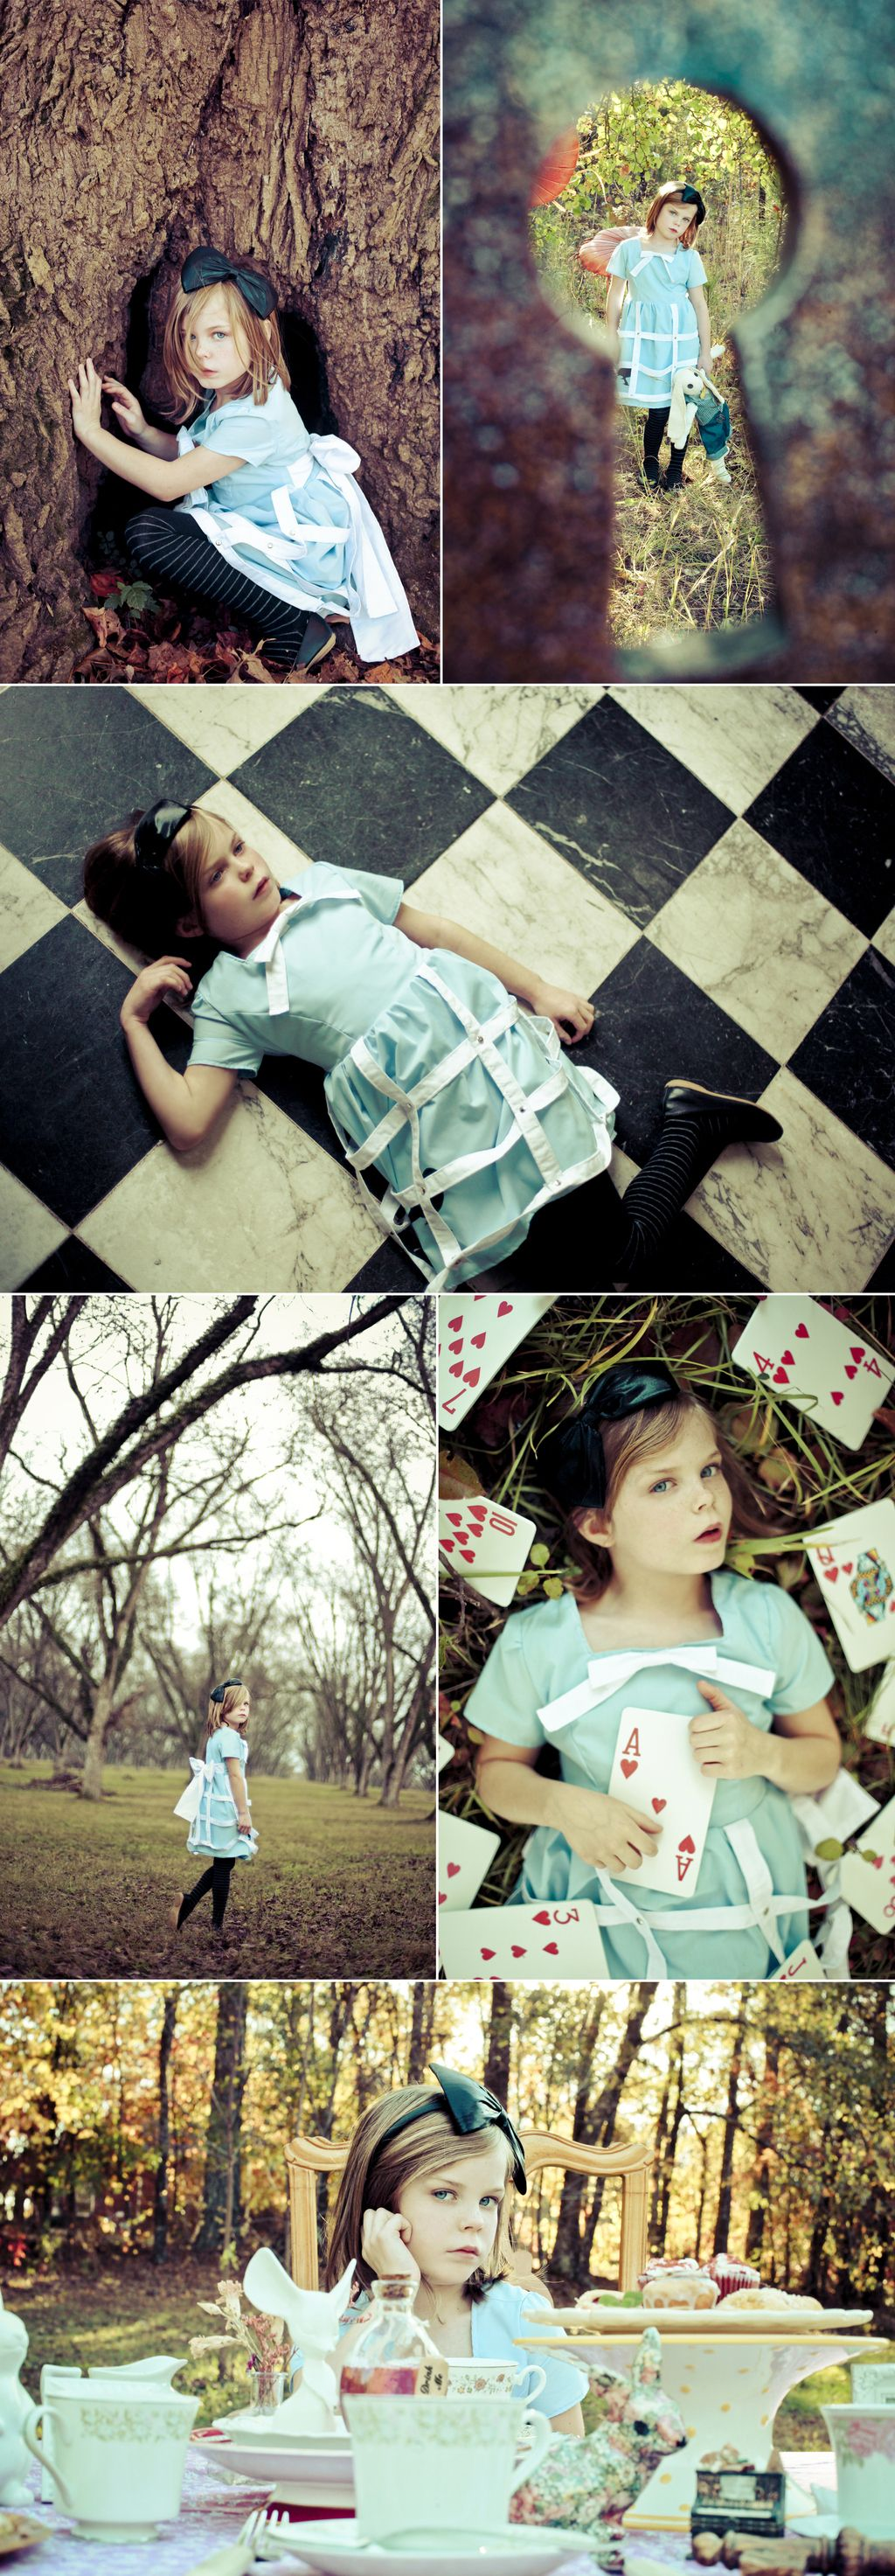 This nine year old little girl is Alice. She was adopted by a photographer family when she was seven years old. Once her mom discovered that Alice had an incredible imagination and an uncanny ability to pose in front of the camera she started planning photo shoots for them to do together. Here's a collection of some of their favorite cosplays featuring some of their favorite characters.